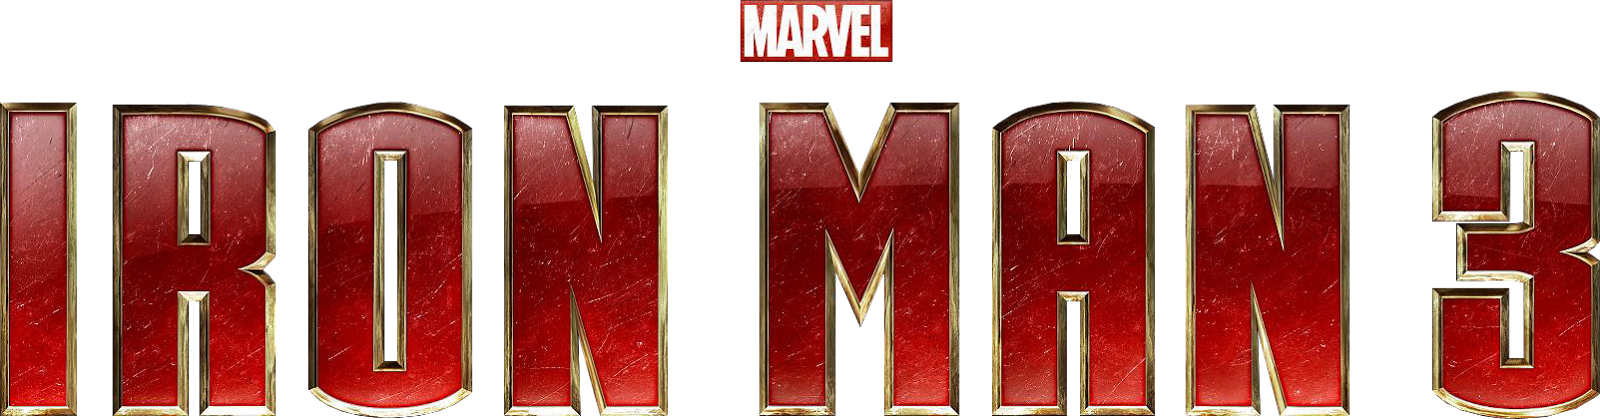 iron man movie logo png